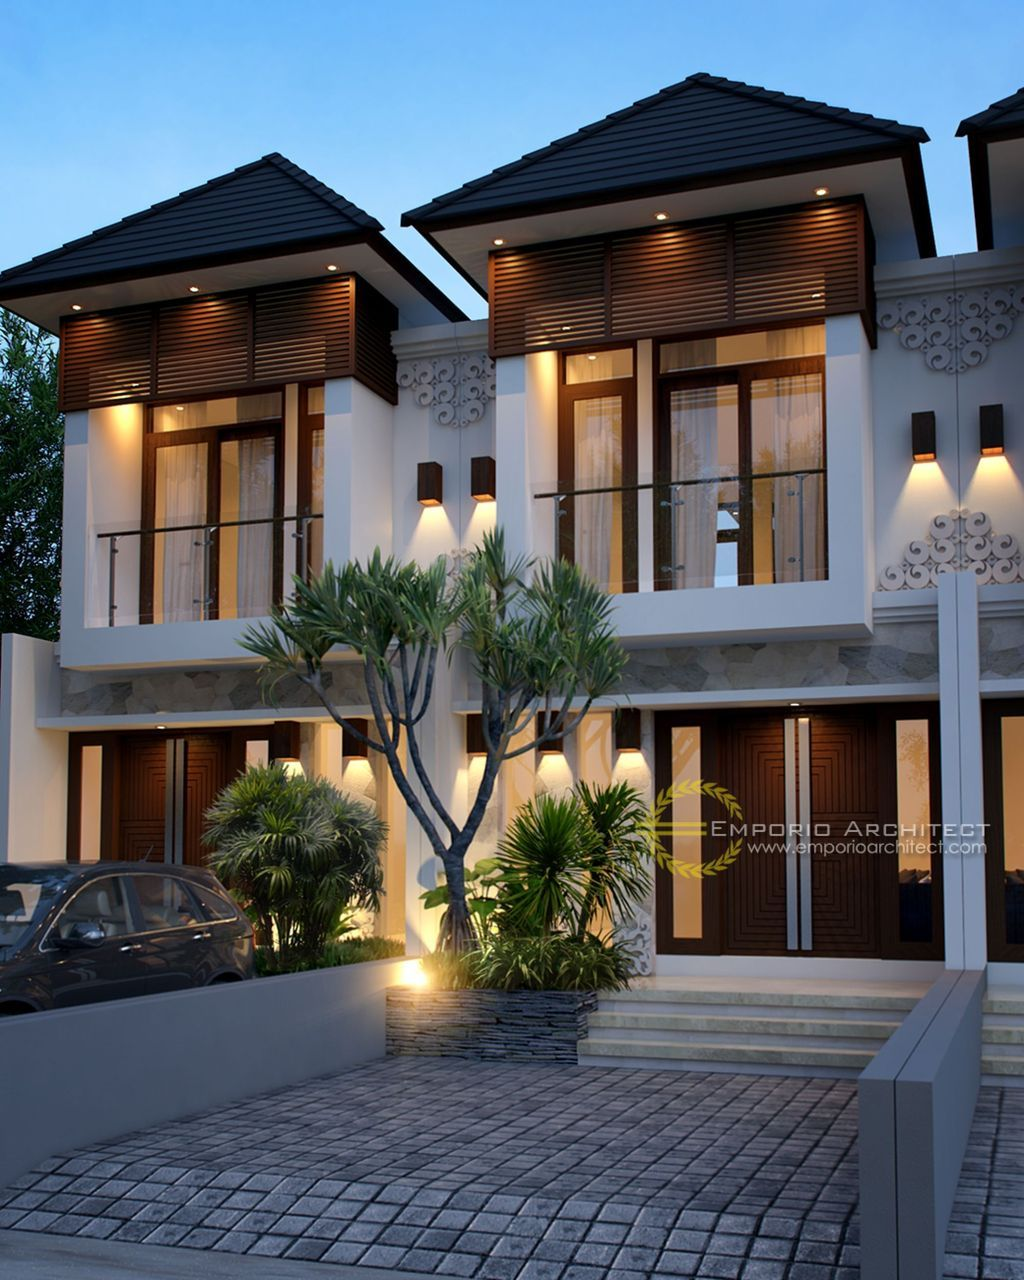 34 The Best Home Architecture Exterior Design Ideas Facade House House Exterior House Designs Exterior